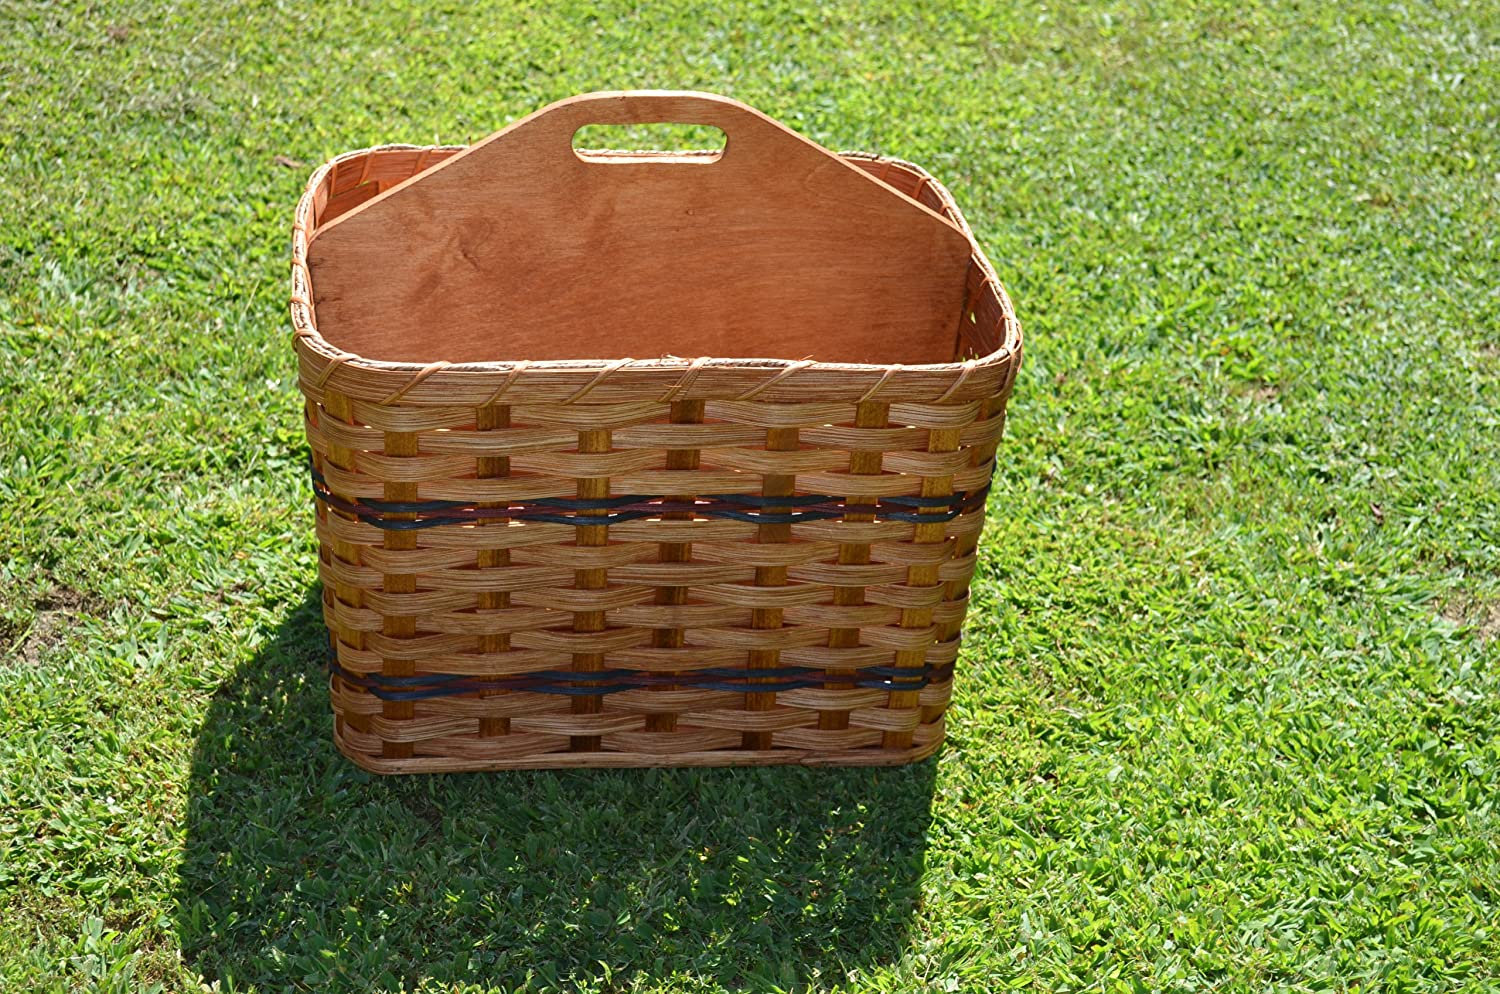 Amish Handmade Magazine Basket with Solid Wood Handled Divider, Will Look Great in Any Office Waiting Area A1Rv2ygPN2BL